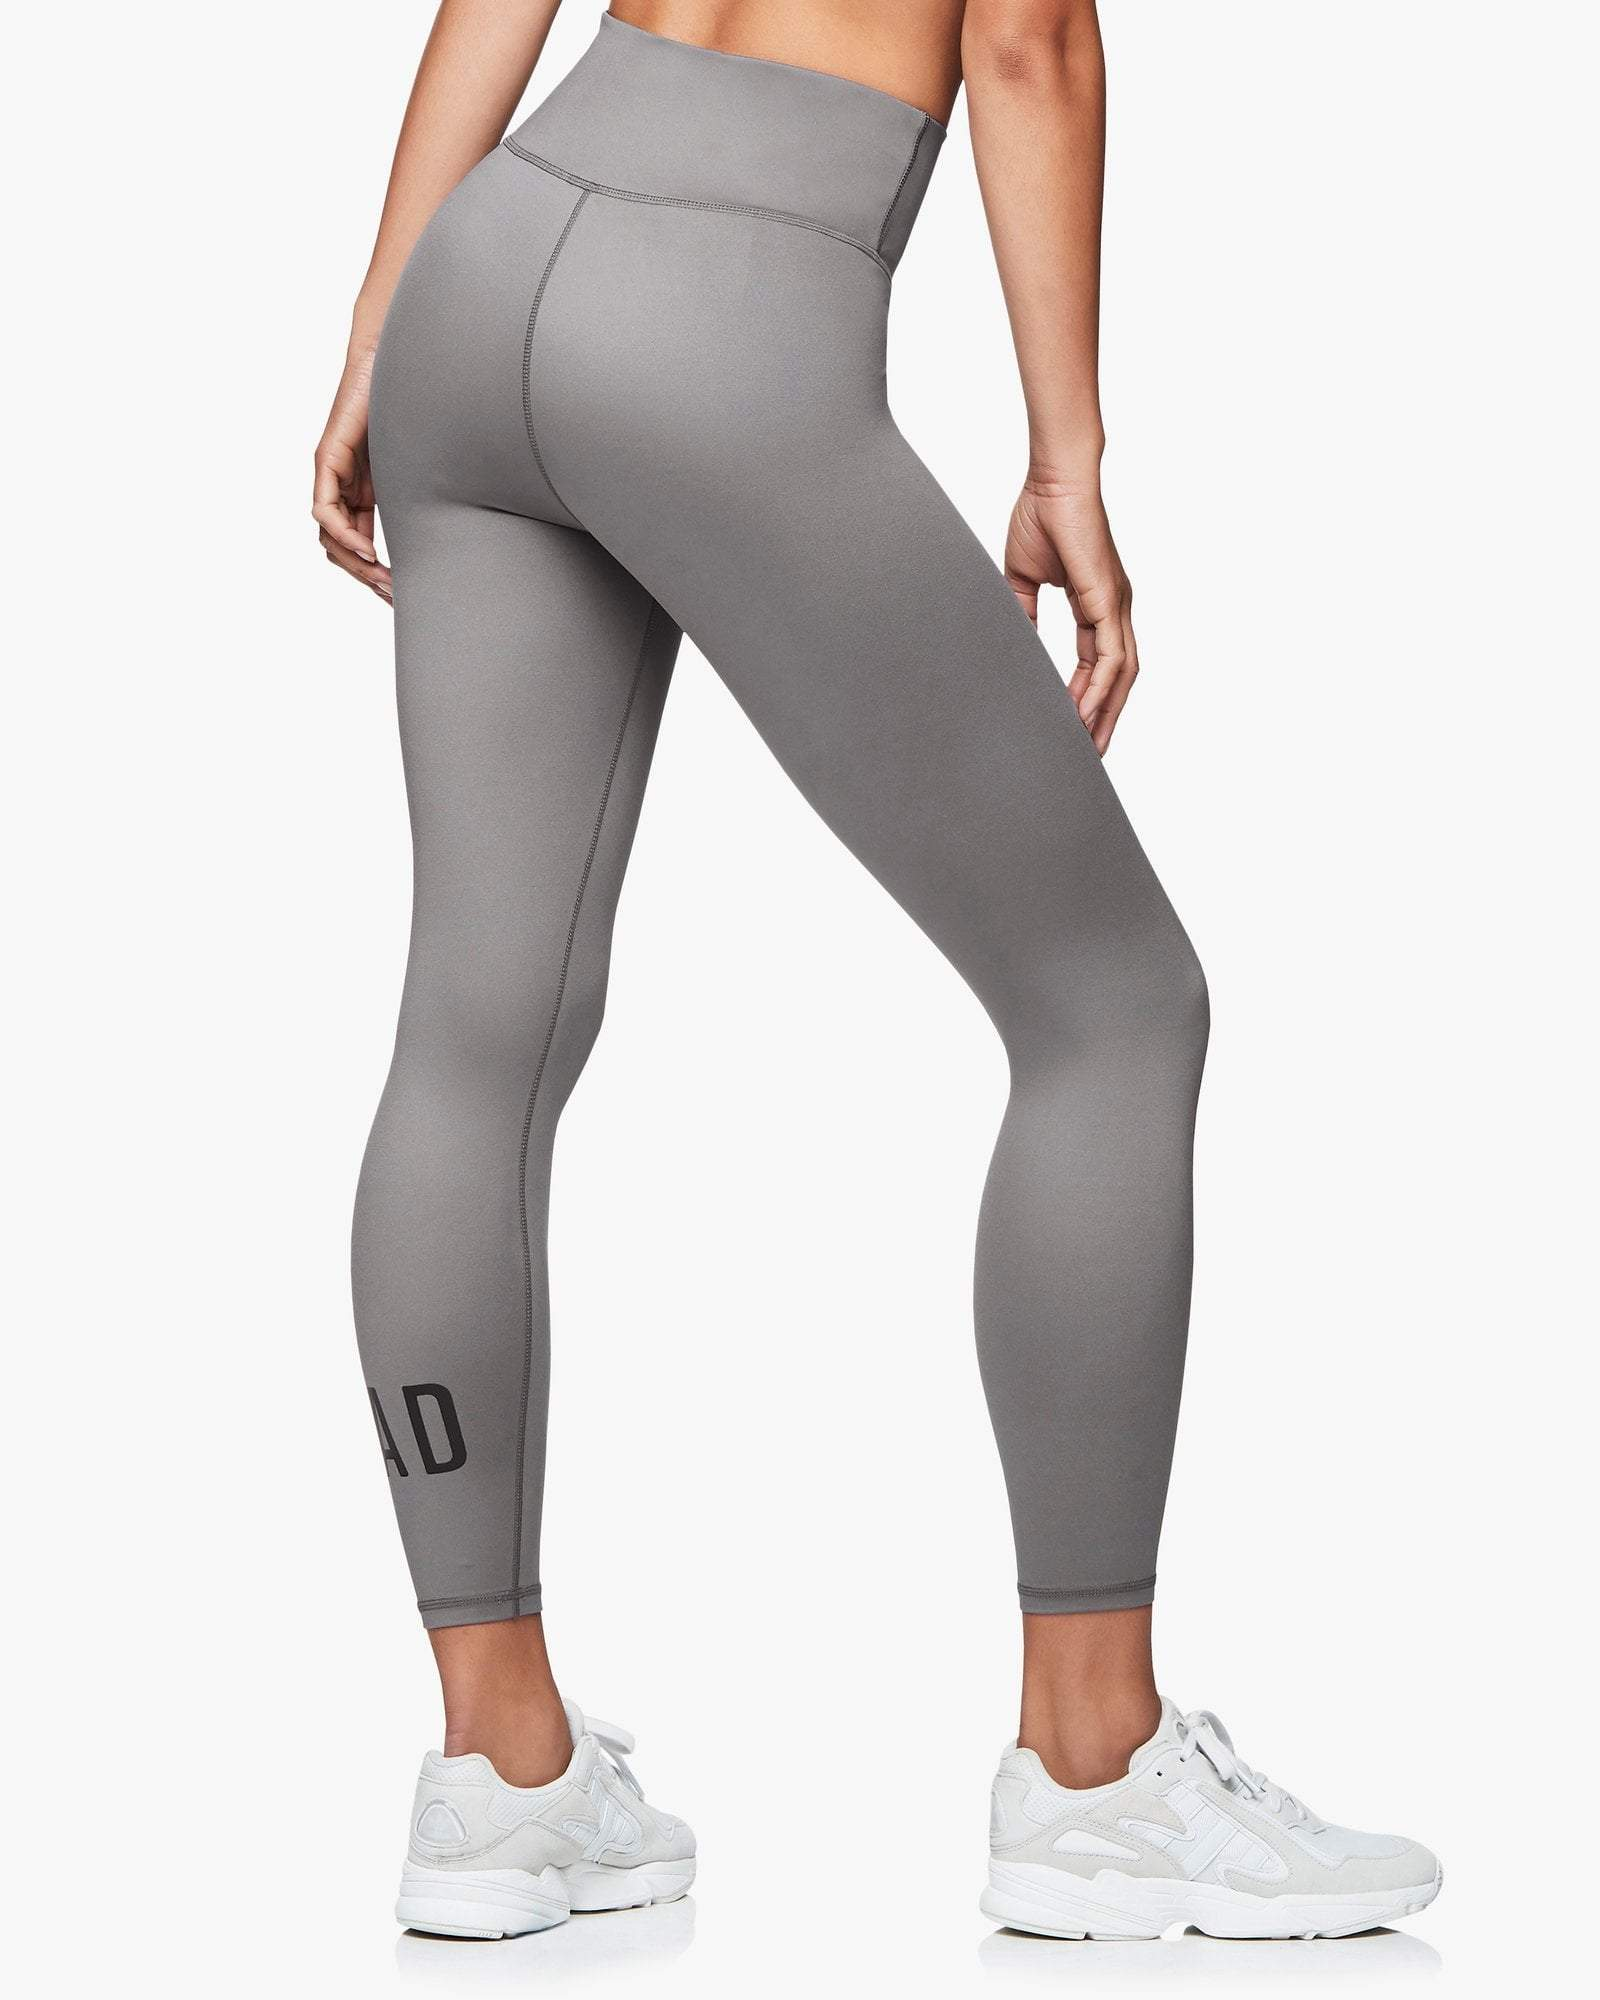 Jaggad Steel High Waist Leggings